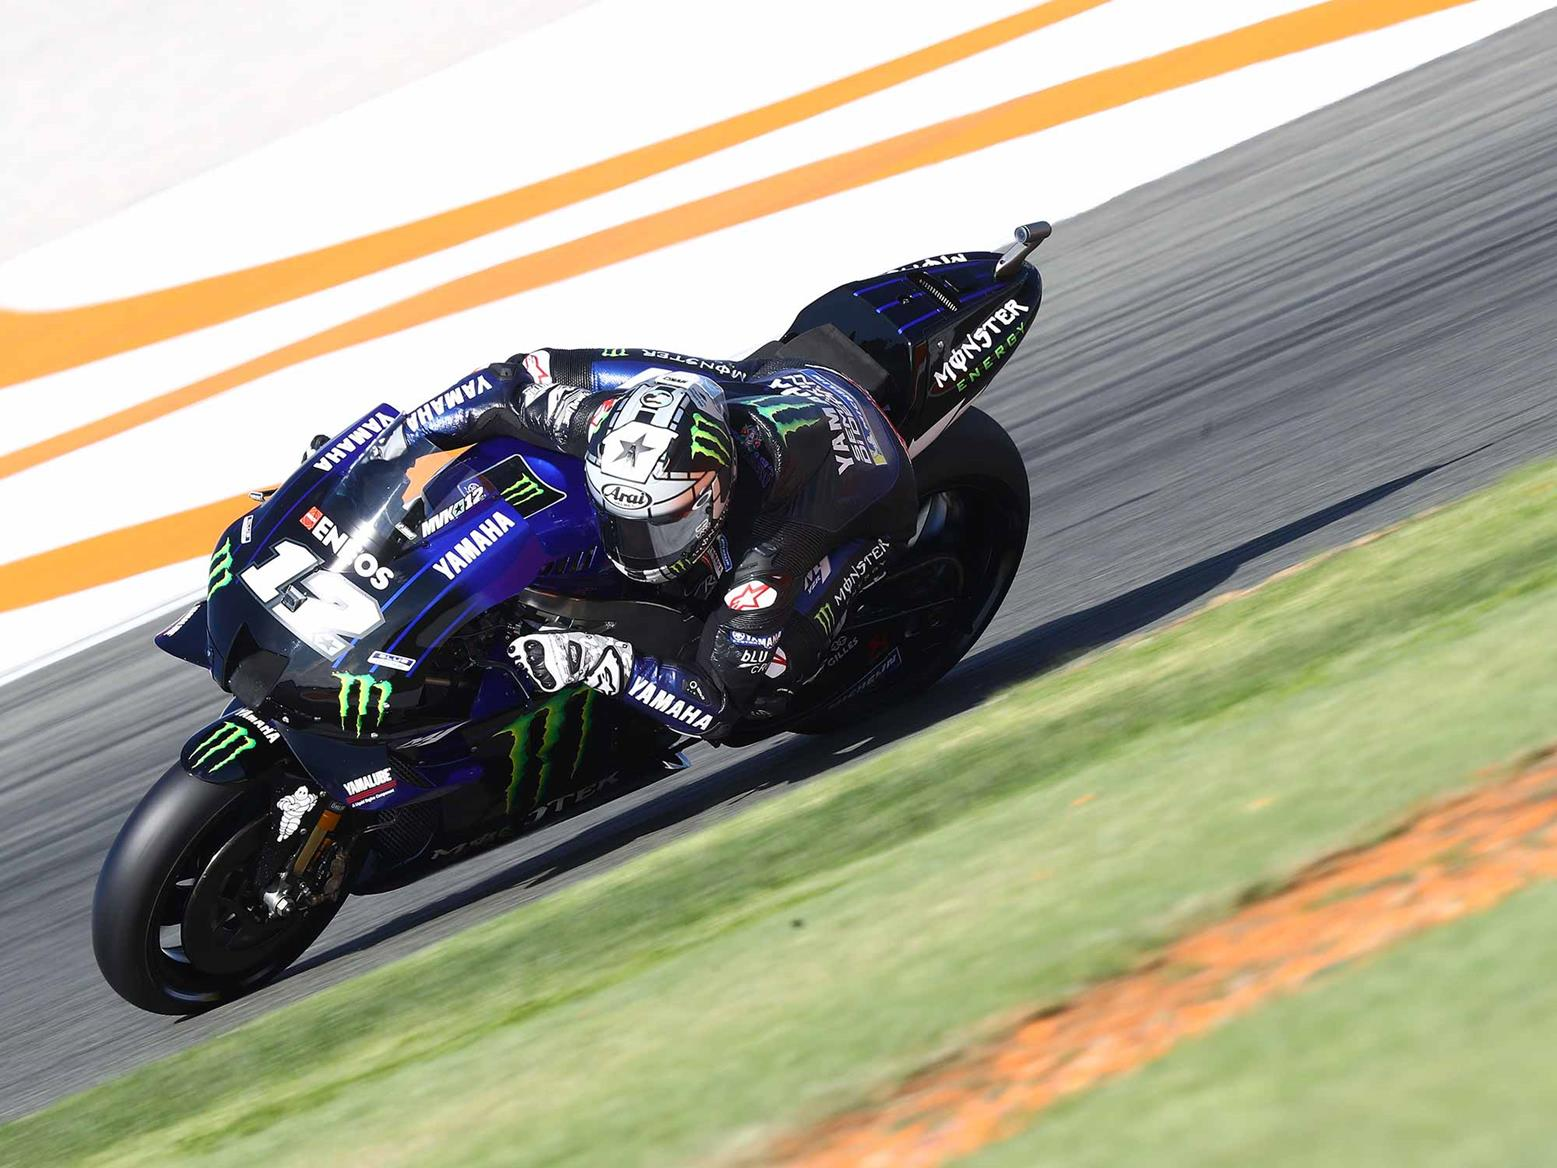 Vinales led the way at Jerez after the morning stint